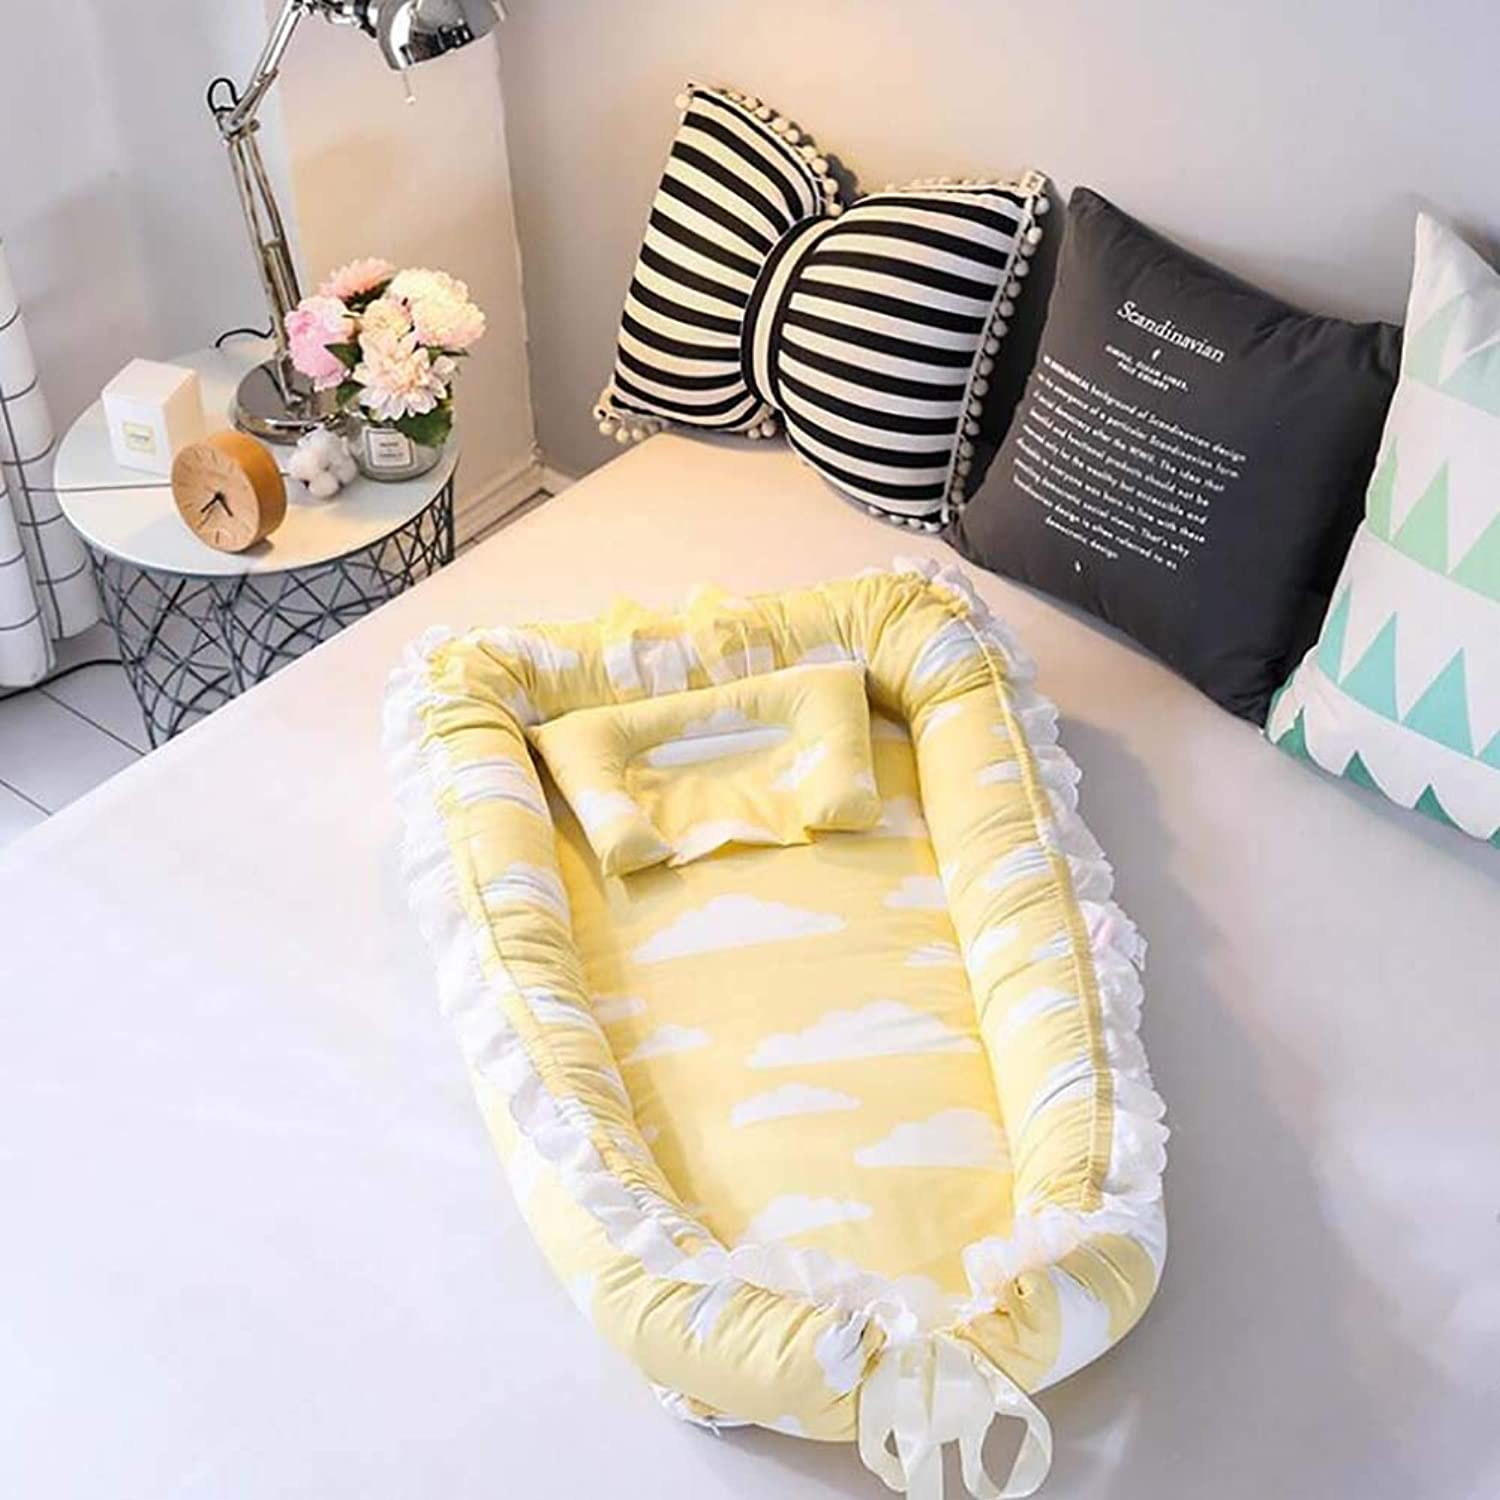 Baby Cot Removable and Washable Baby Isolation Bed Cotton Newborn Bionic Bed Removable and Washable Suitable for Baby from 0 to 24 Months,F